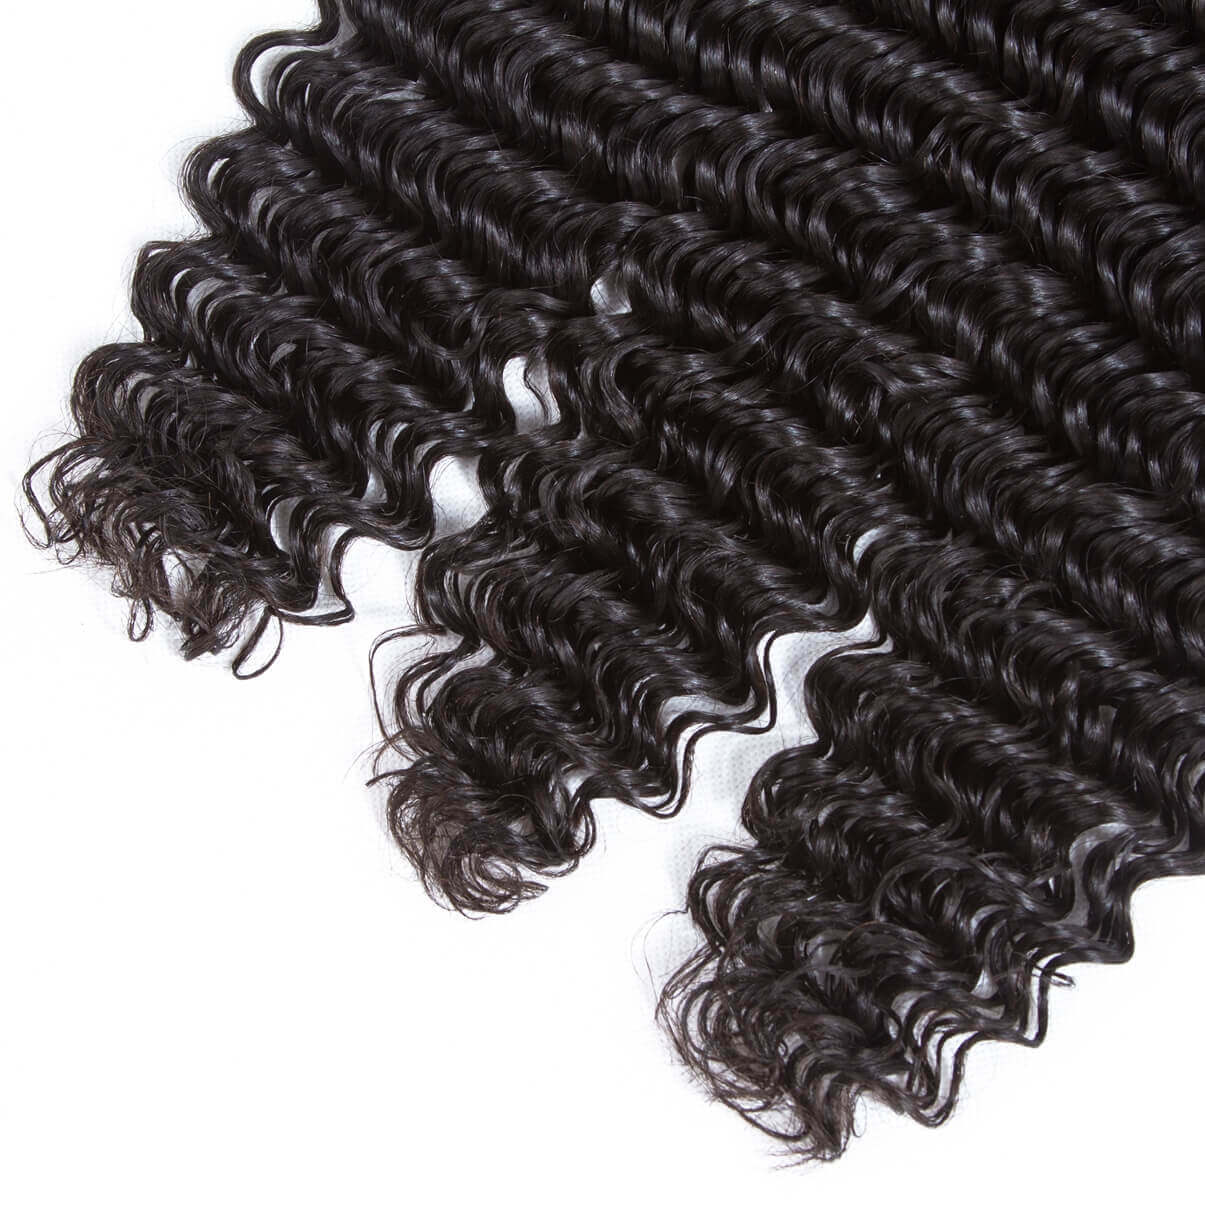 Lakihair 8A Brazilian Virgin Human Hair Deep Wave 3 Bundles With Lace Frontal Closure 13x4